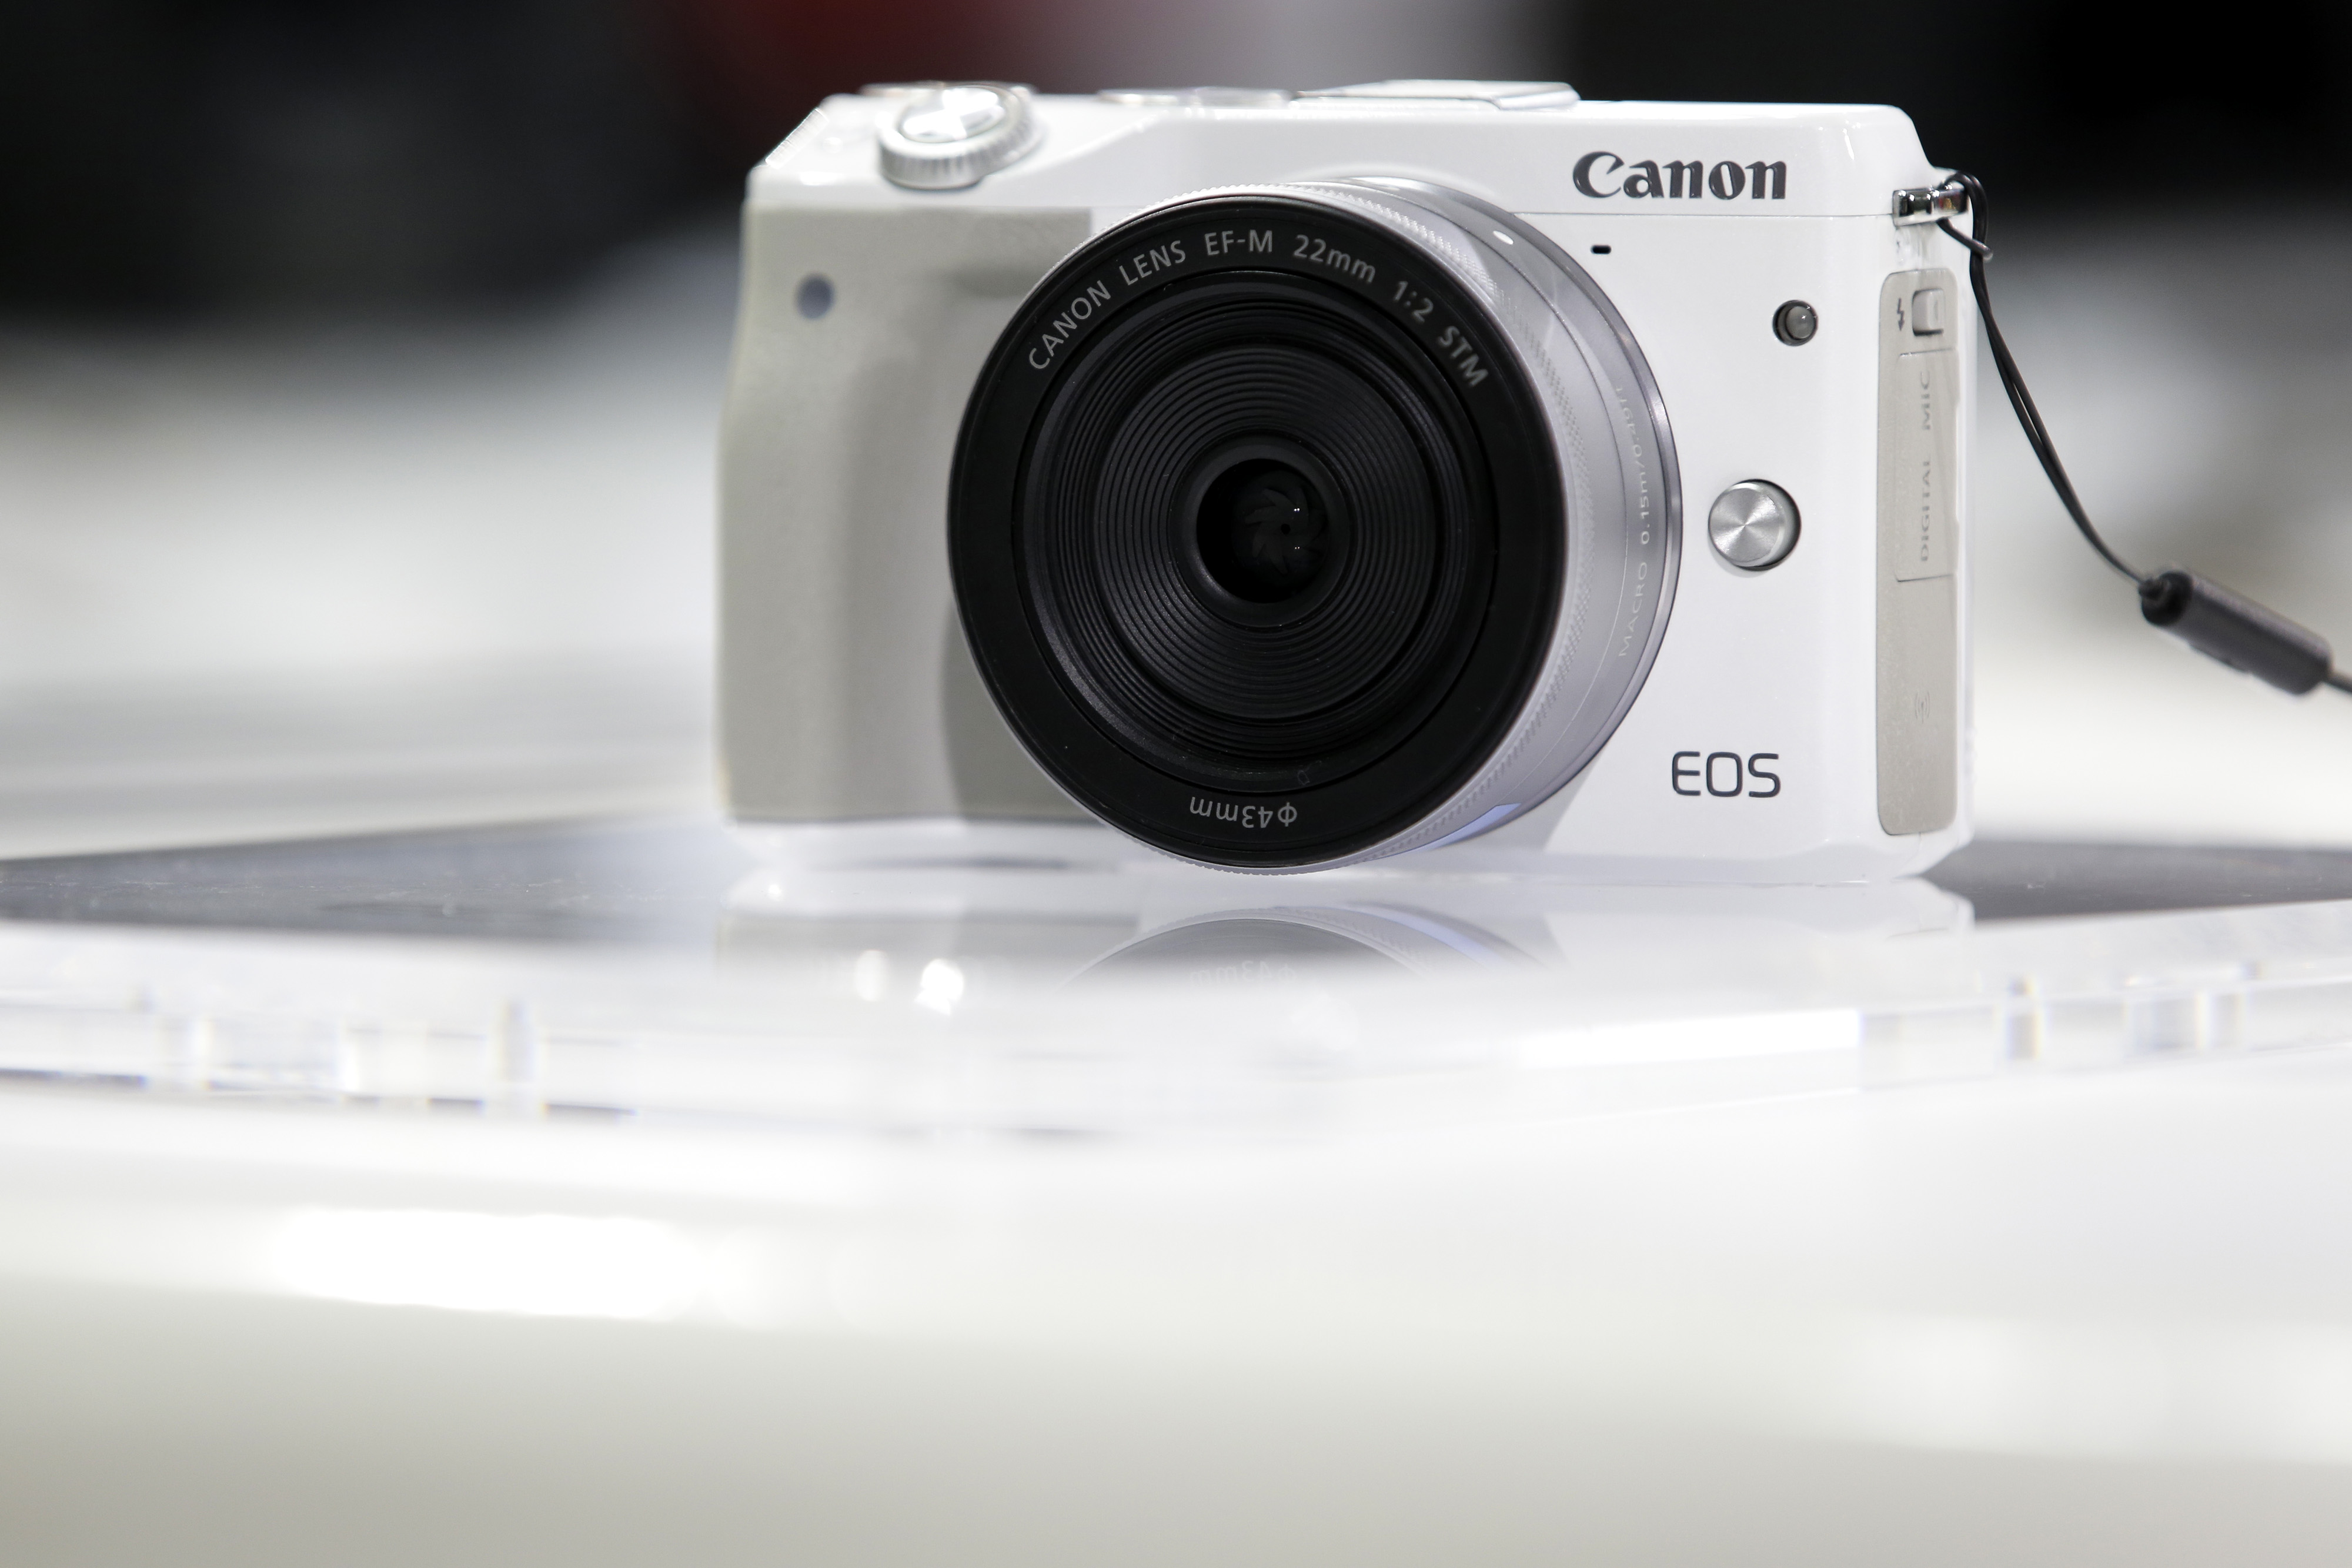 A Canon Inc. EOS M3 mirrorless digital camera